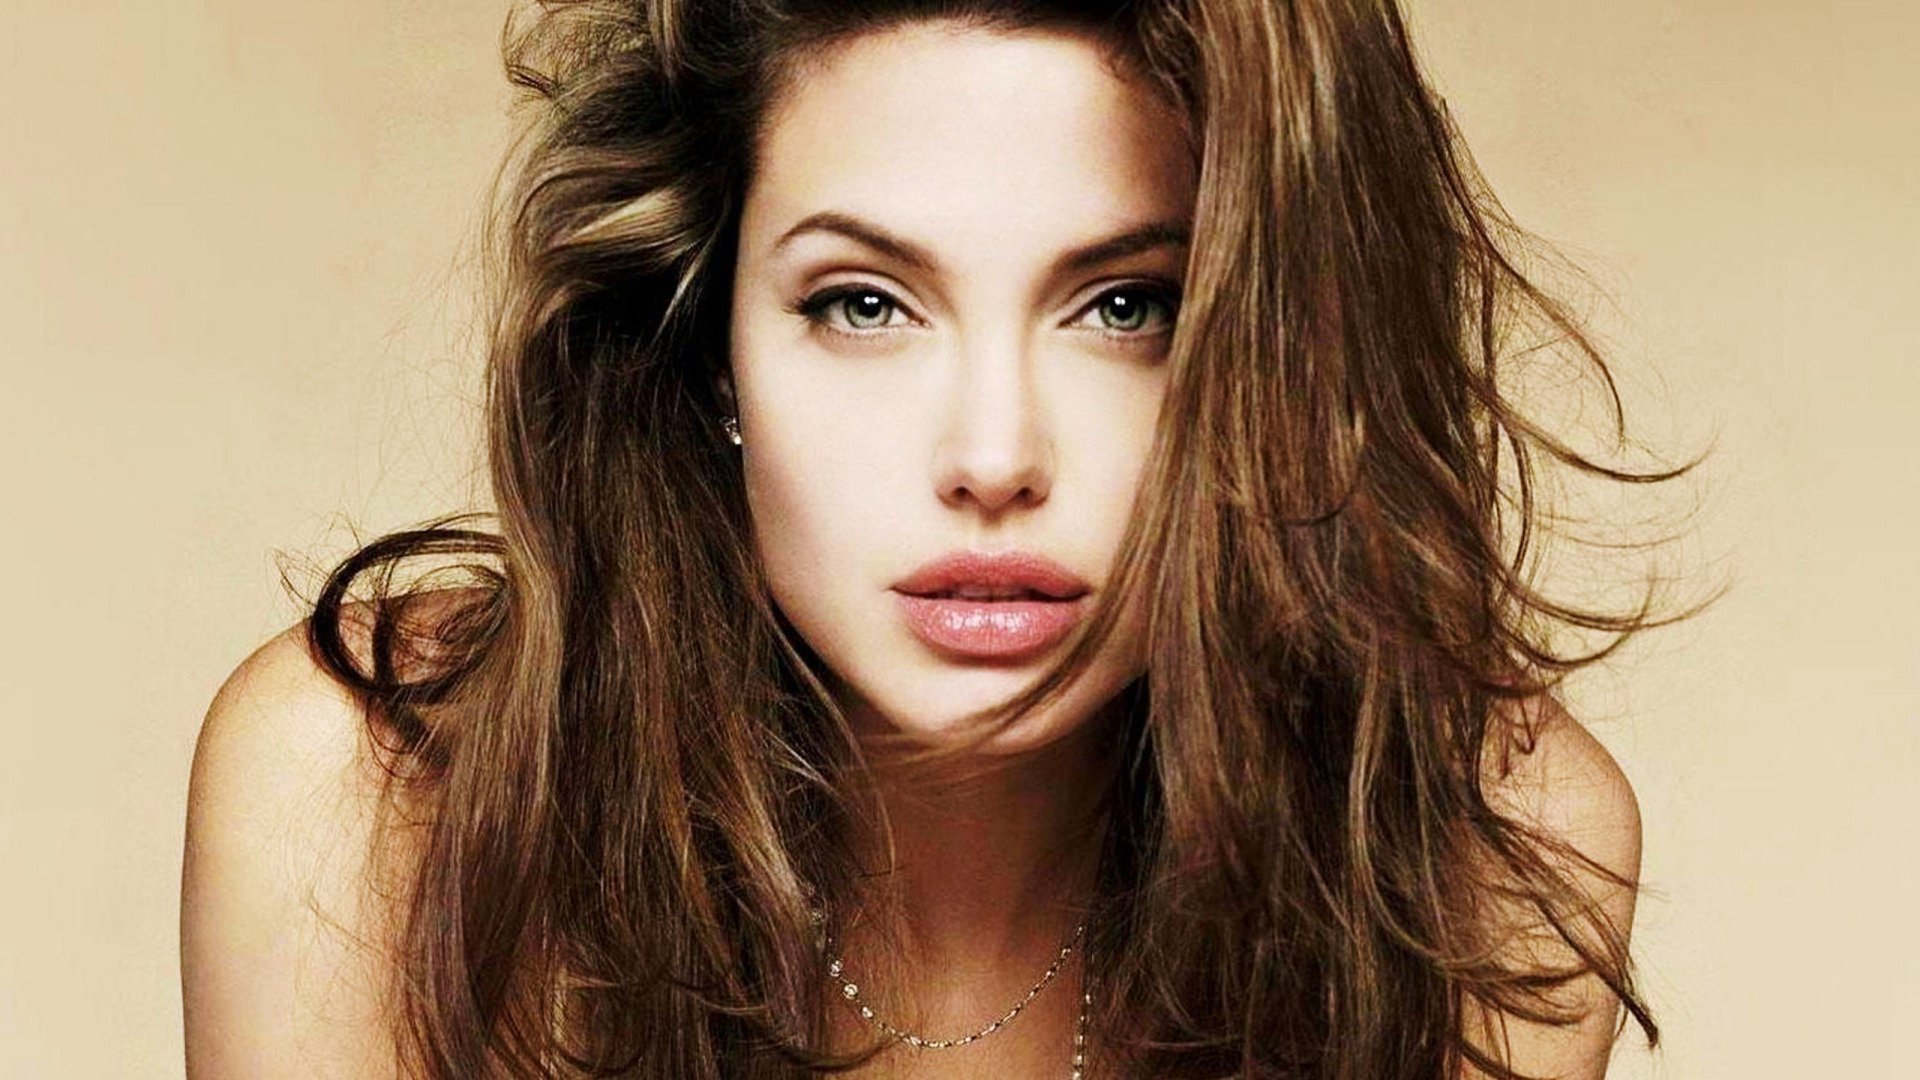 By The Sea Film: Angelina Jolie worried about naked